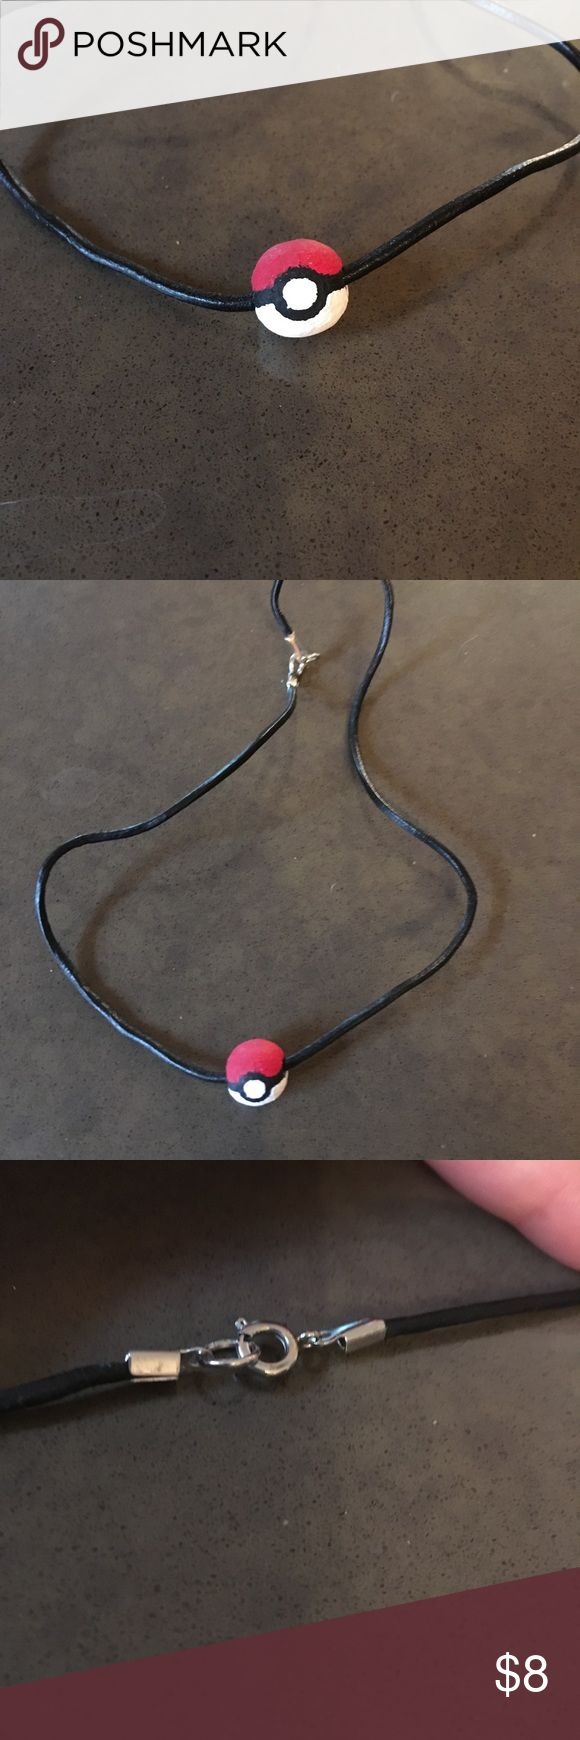 🔵 pokeball choker necklace Cute and unique choker necklace featuring a pokeball charm! It is a wooden bead painted using acrylic paint. The cord is faux leather and has a silver tone circle clasp. Clasp is lead and nickel free.  Blue dot 🔵 sale: one item for $8, two items for $12 or three for $15. Jewelry Necklaces